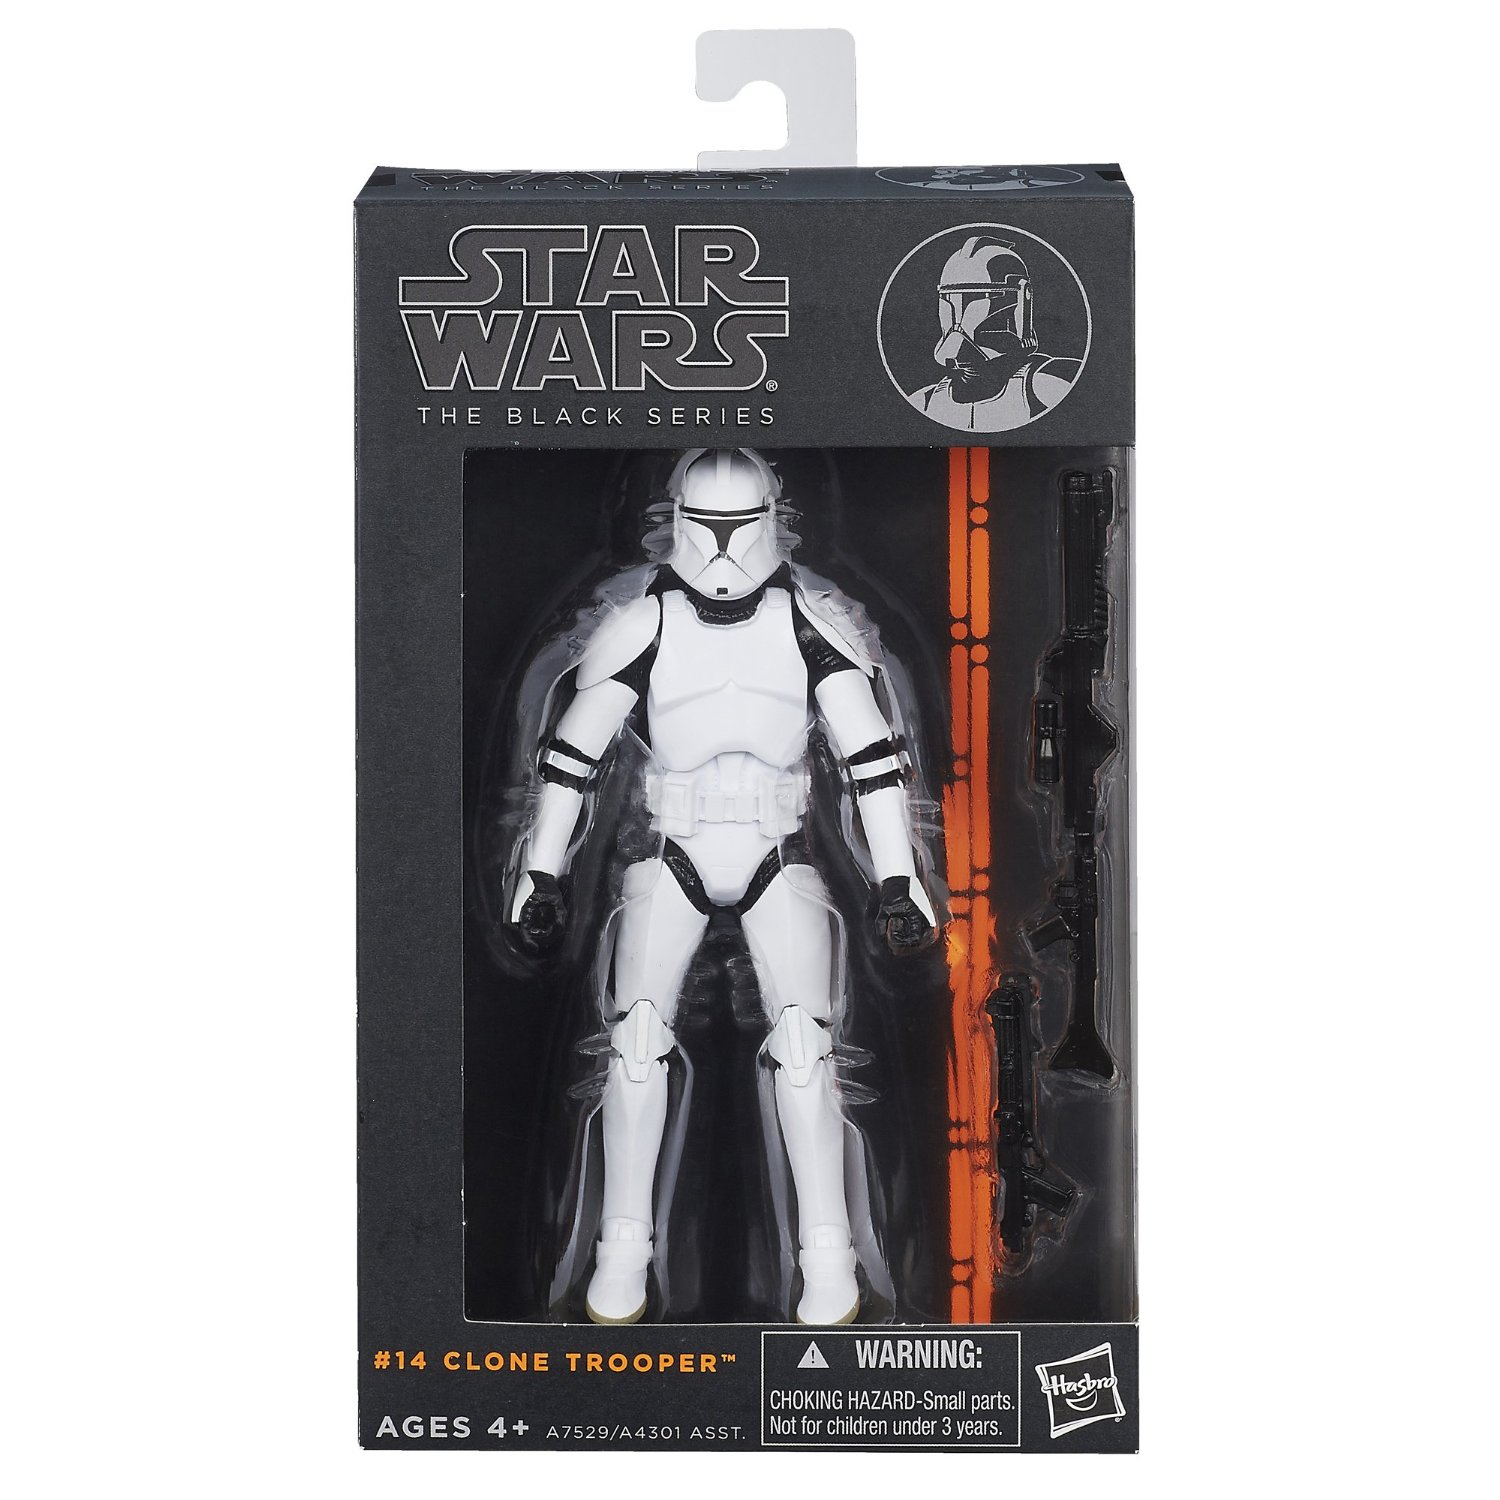 Star Wars The Black Series 6″ Clone Trooper Figure $13.59 + Free Shipping